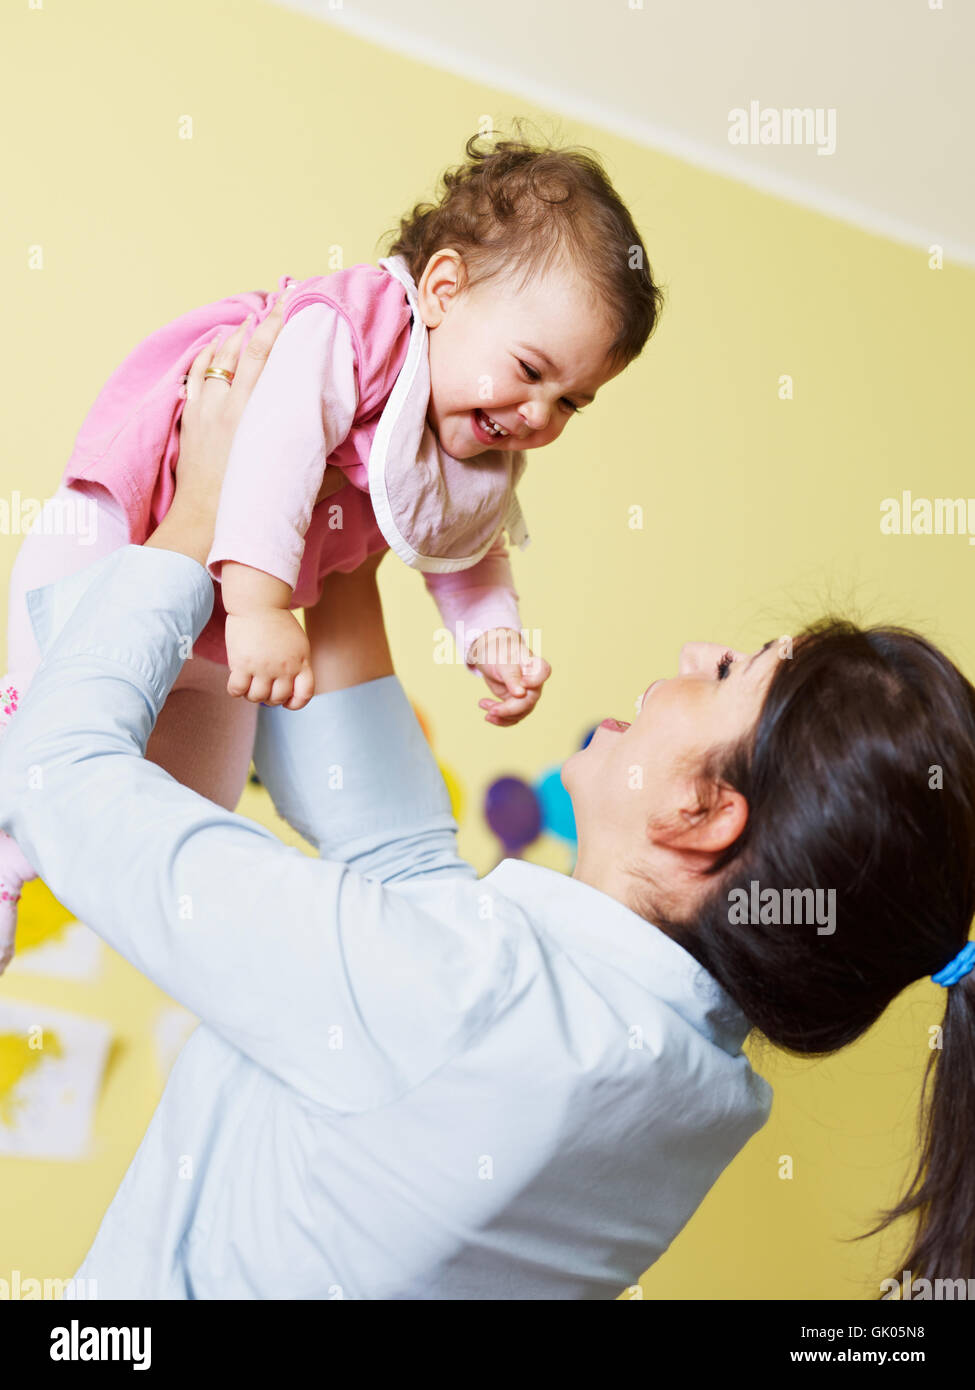 Femme rire rires Photo Stock